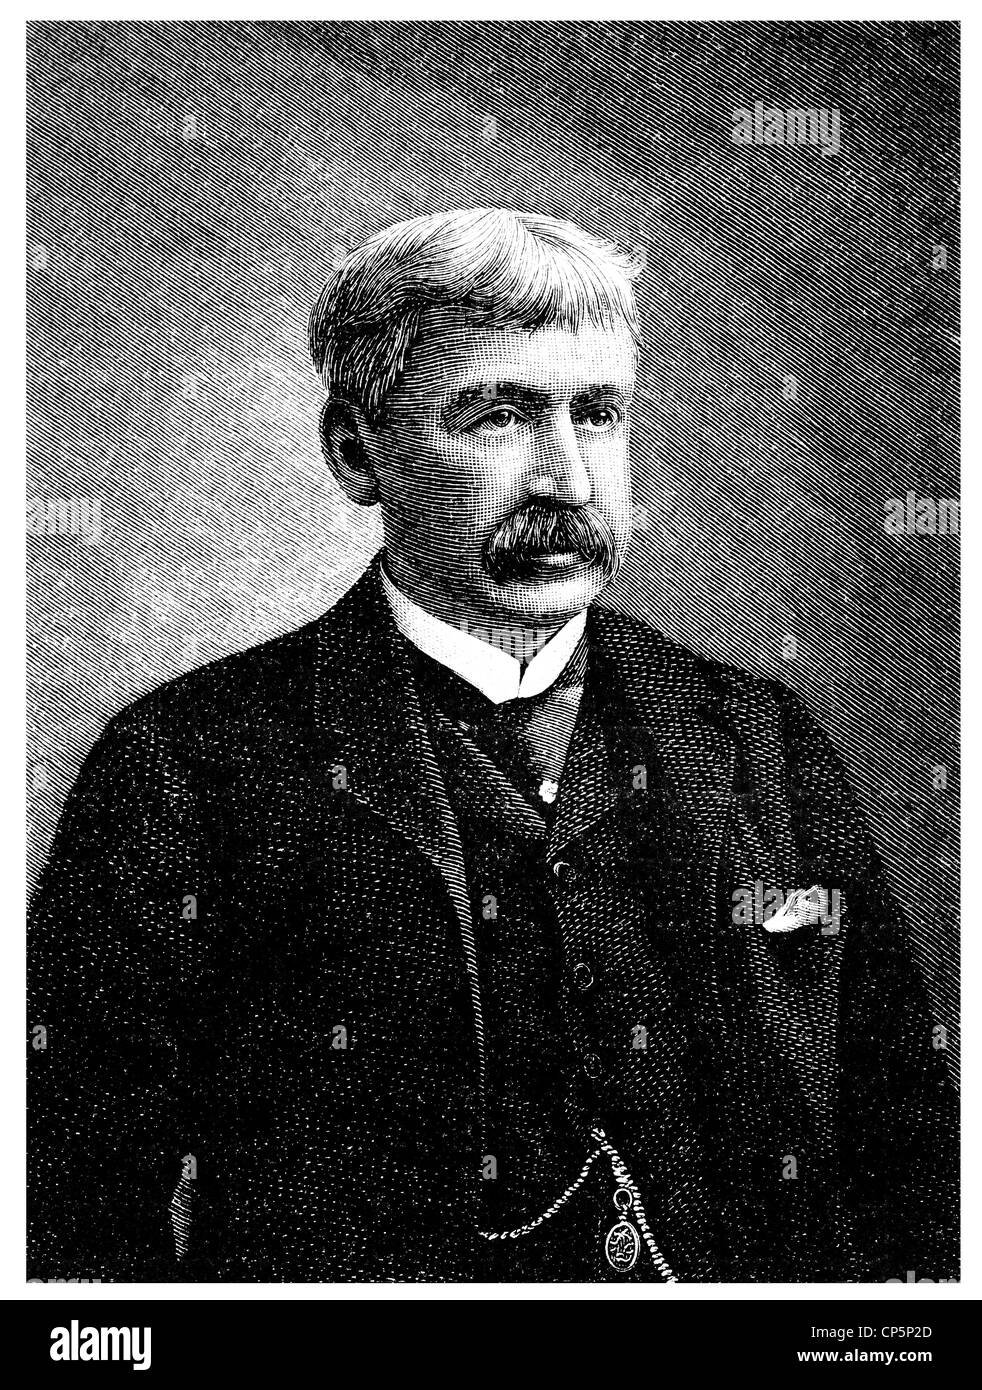 Francis Bret Harte, 1836 -1902, an American writer, - Stock Image